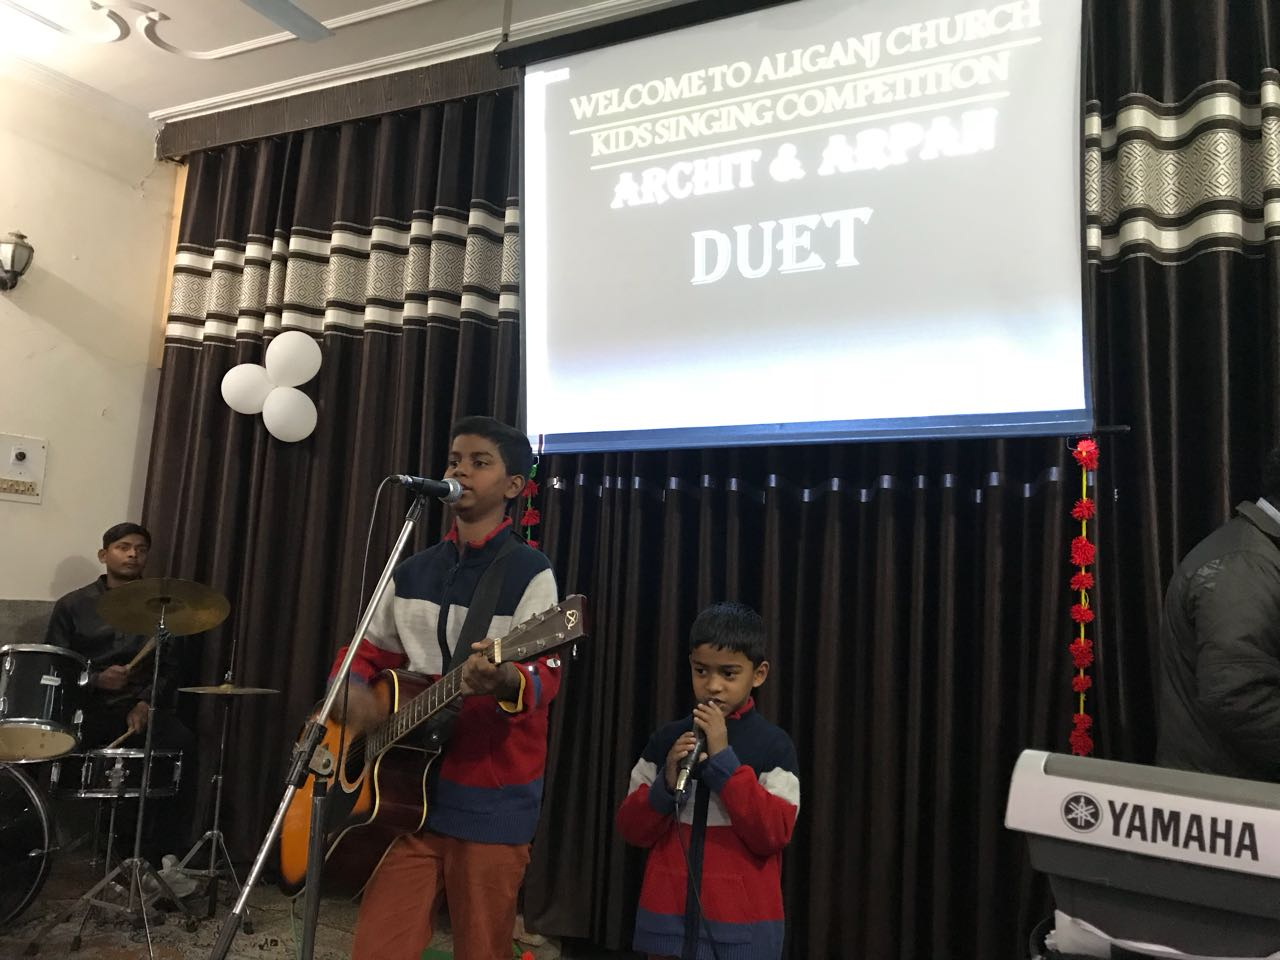 Kids Singing Competition